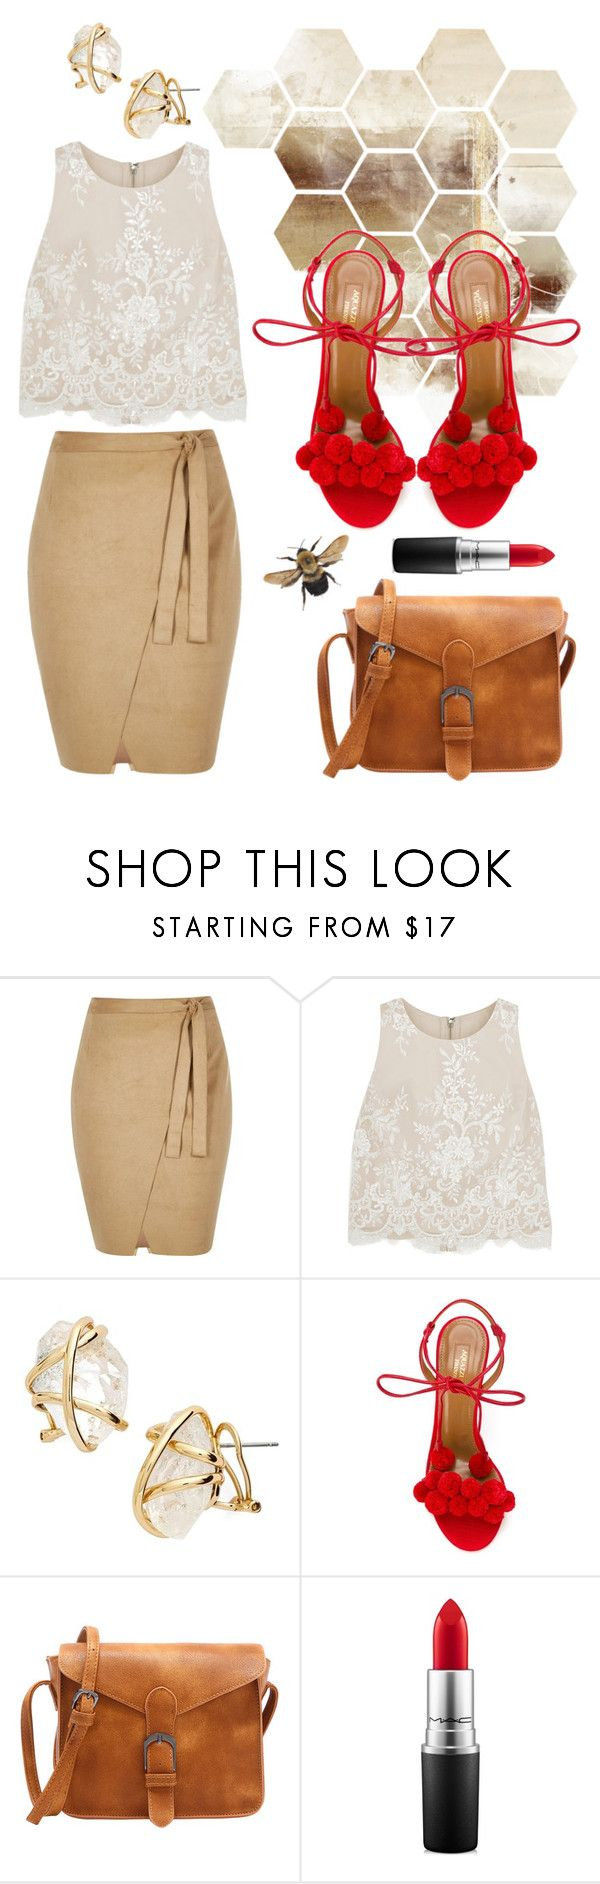 """бежевая юбка"" by anjasha ❤ liked on Polyvore featuring River Island, Alice + Olivia, Alexis Bittar, Aquazzura and MAC Cosmetics"